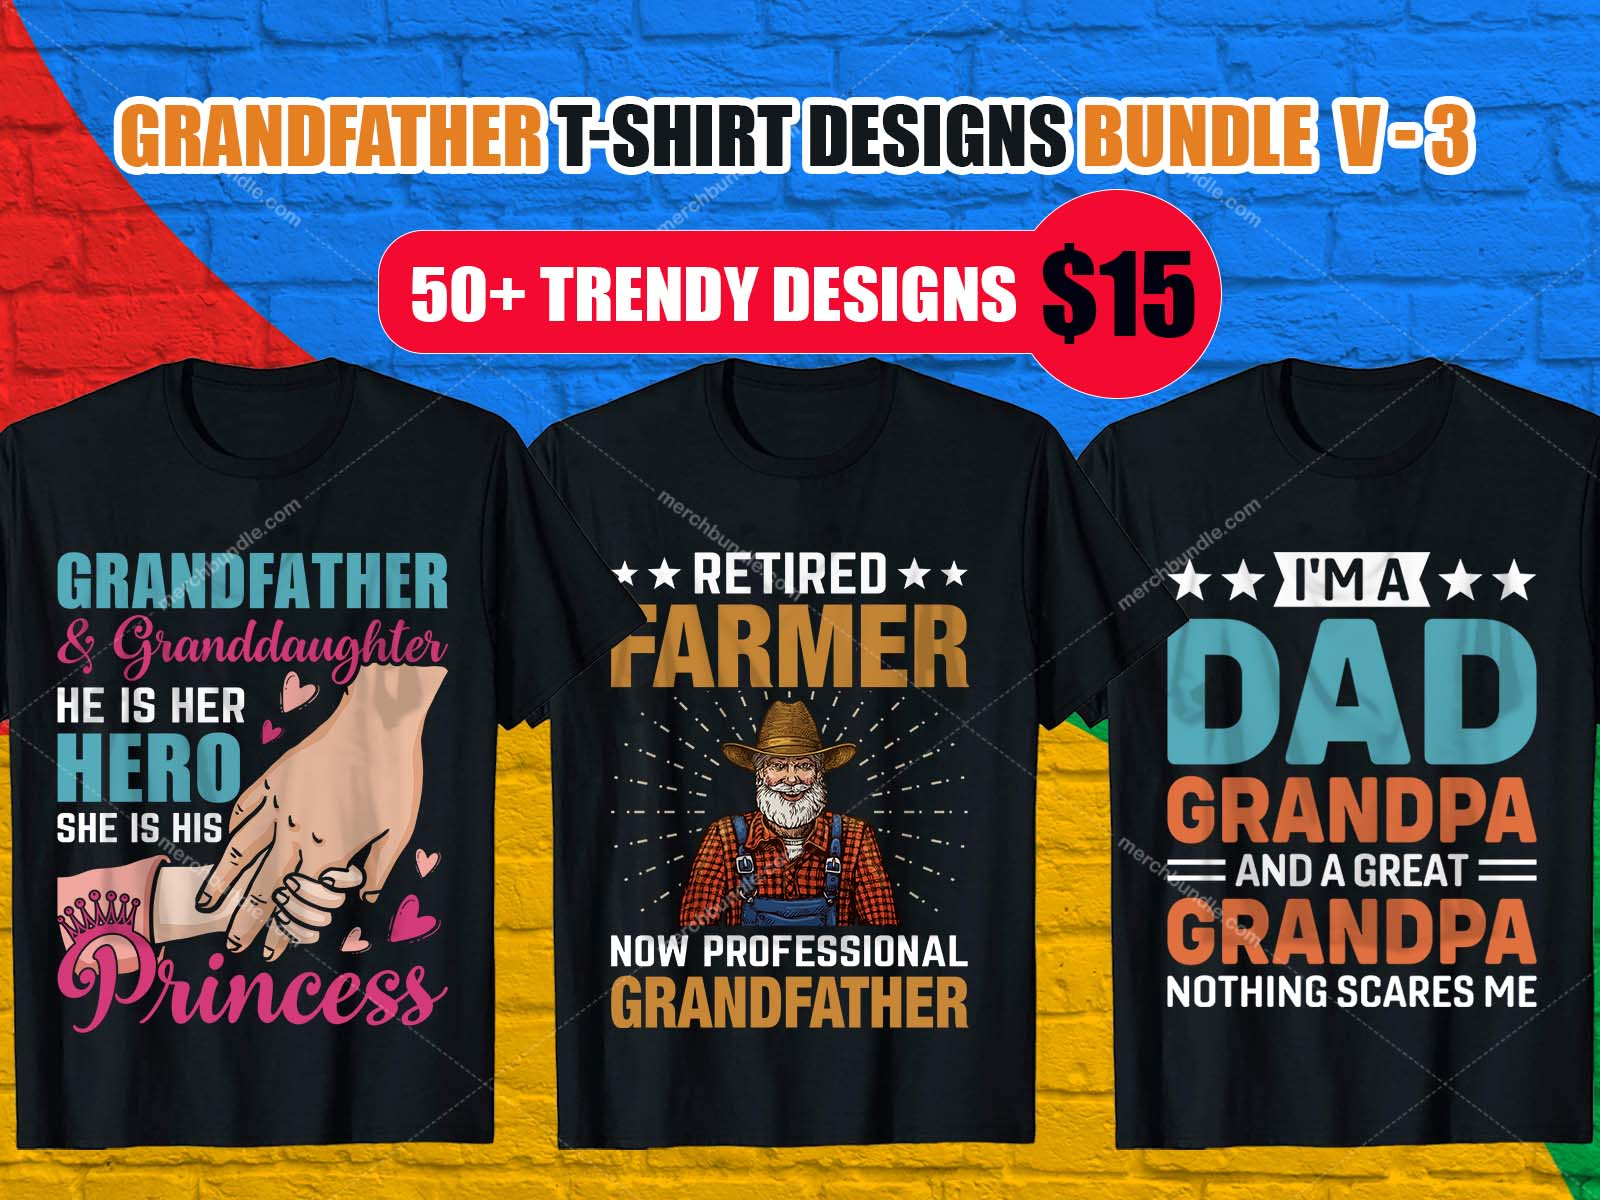 GrandFather TShirt Design Bundle,